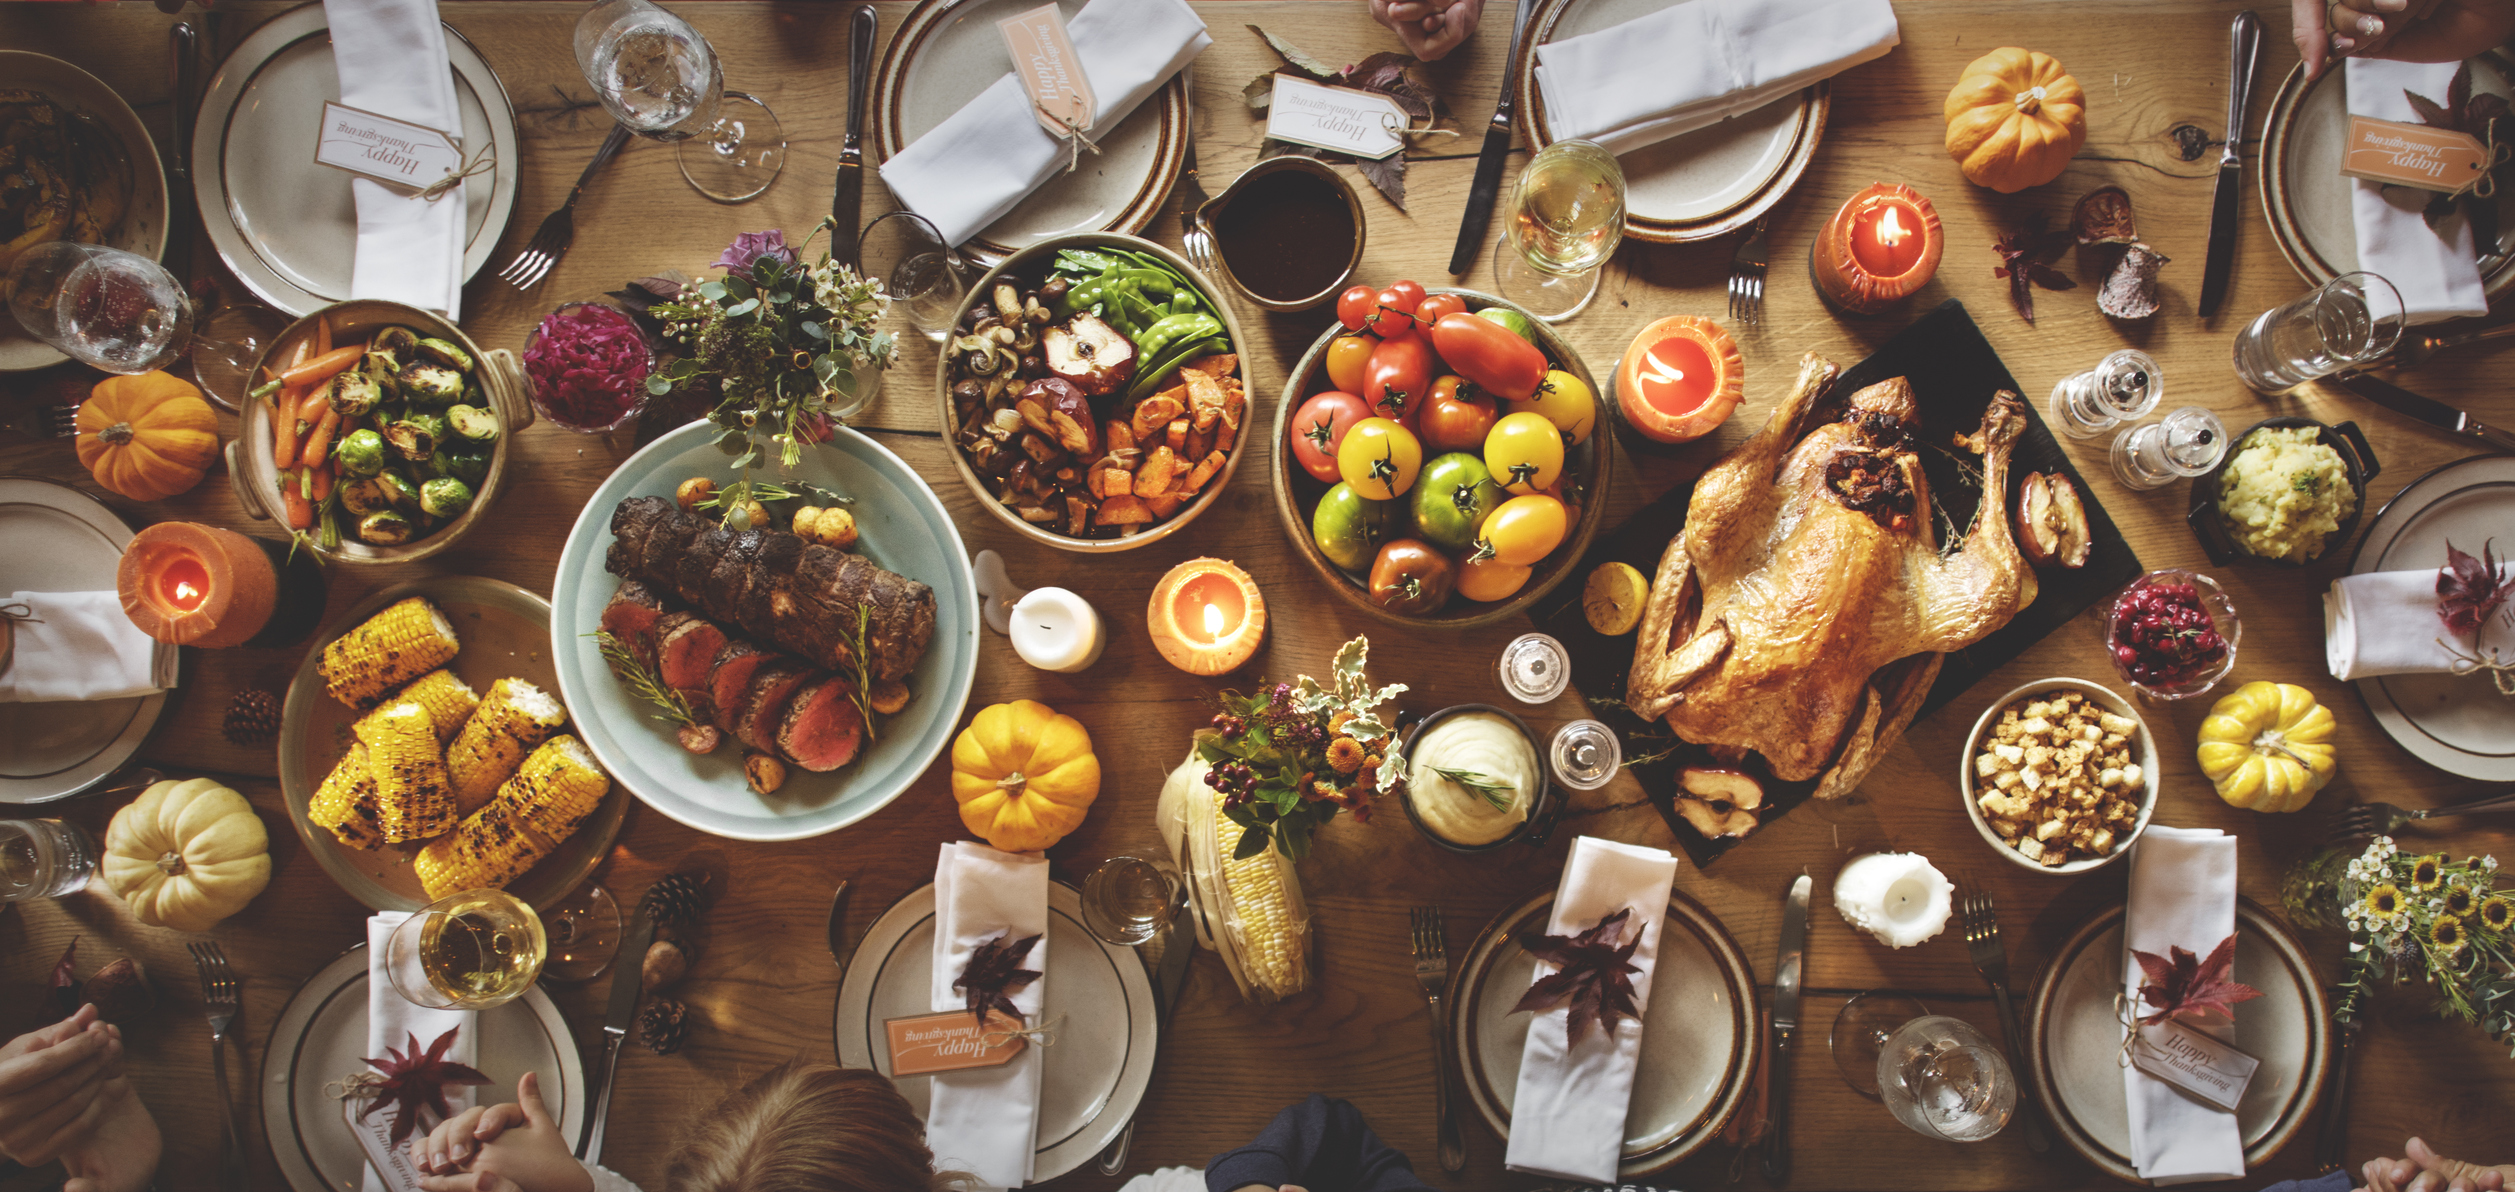 5 Phenomenal Tips for Your Friendsgiving Festivities